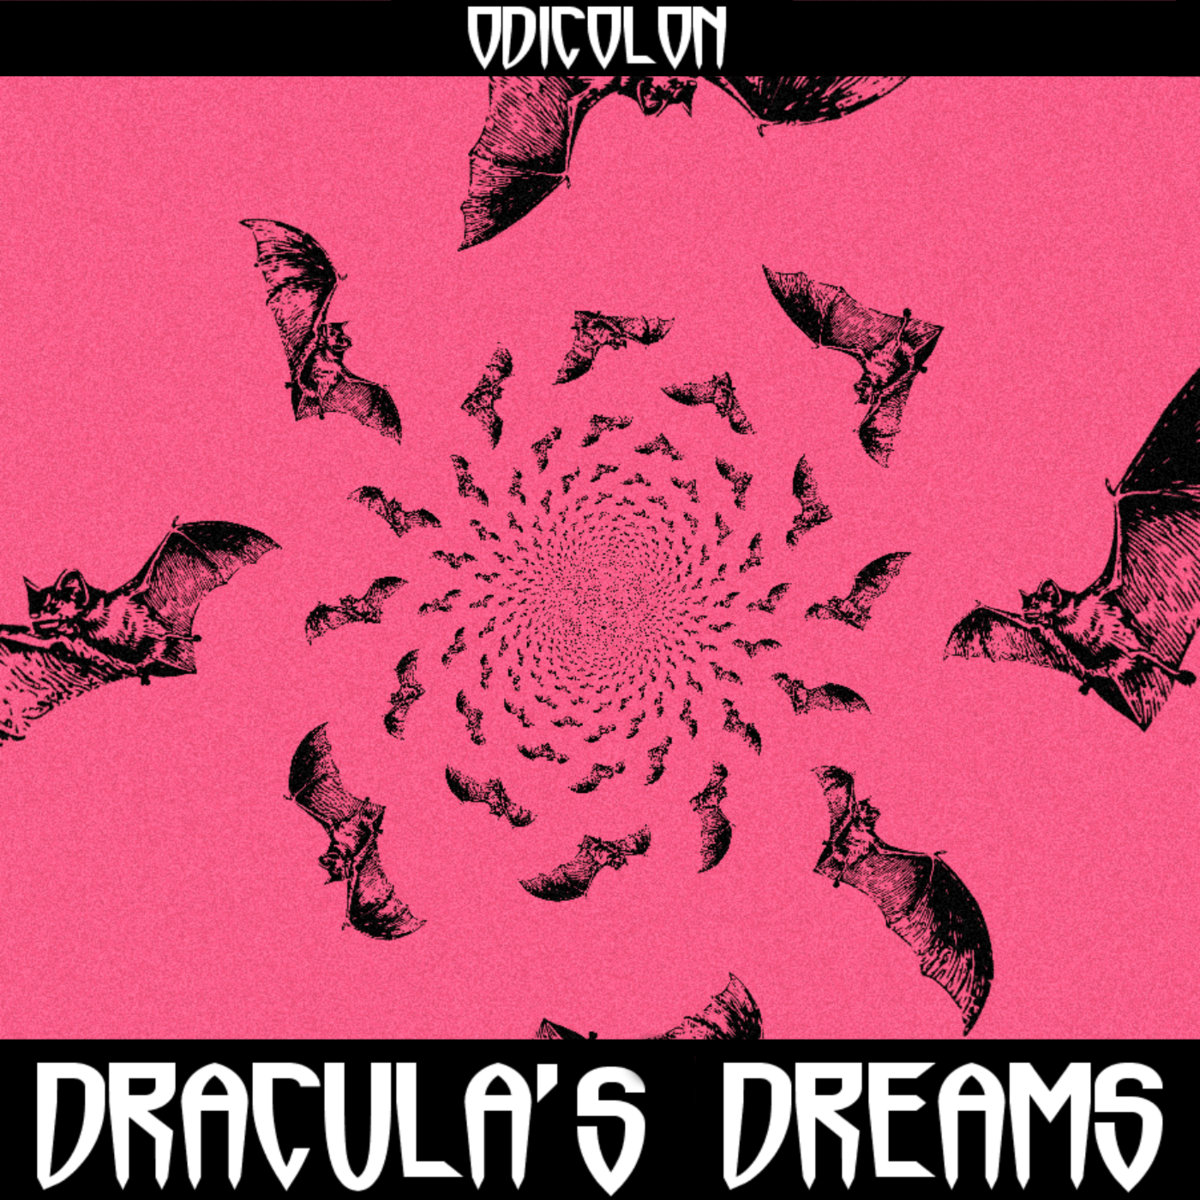 Odicolon - Dracula's Dreams